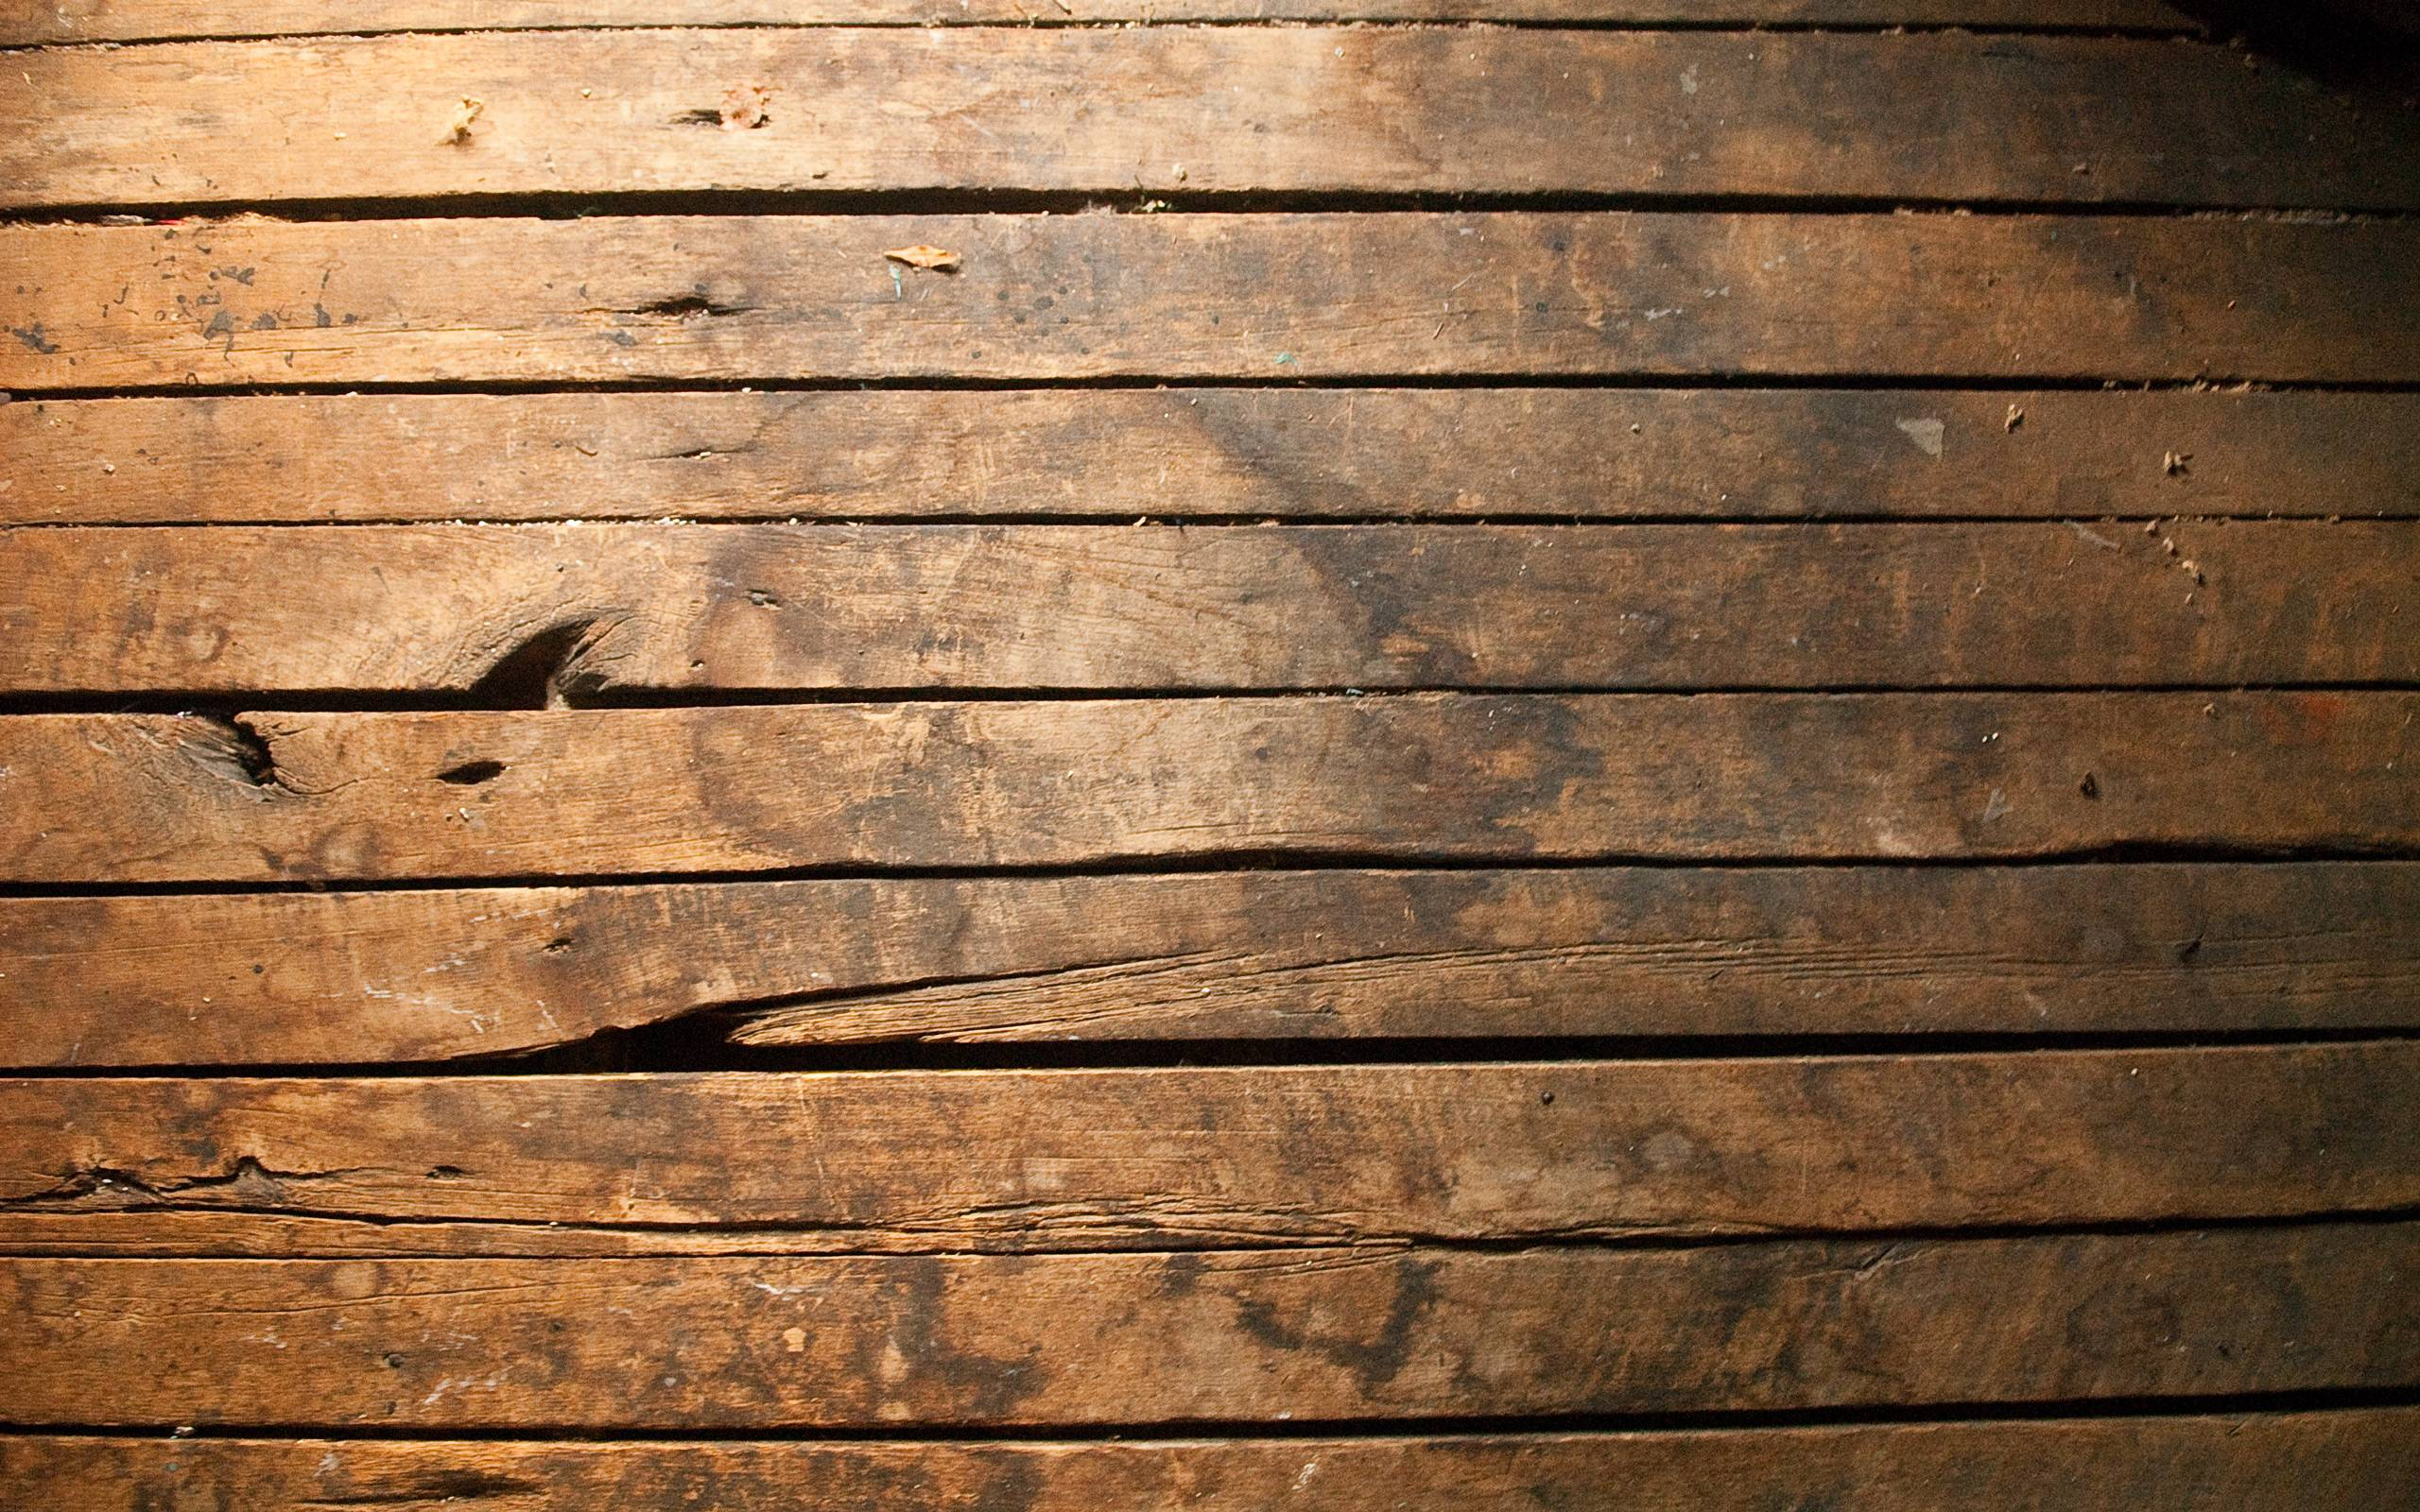 50 Hd Wood Wallpapers For Free Download: Wood Wallpapers